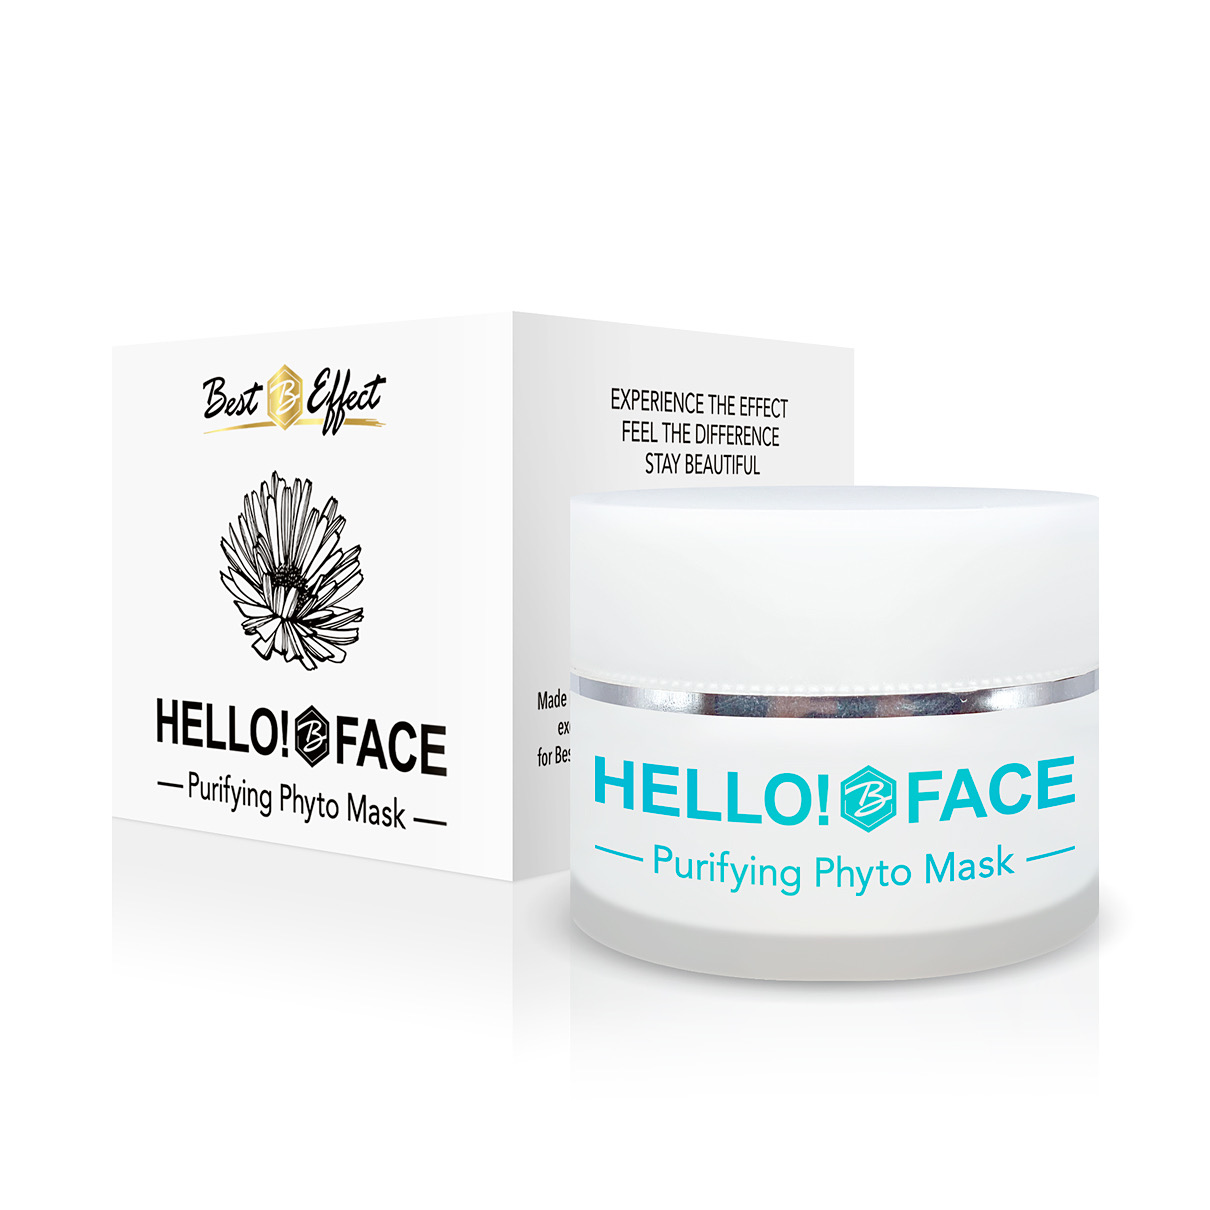 Hello!Face Purifying Phyto Mask